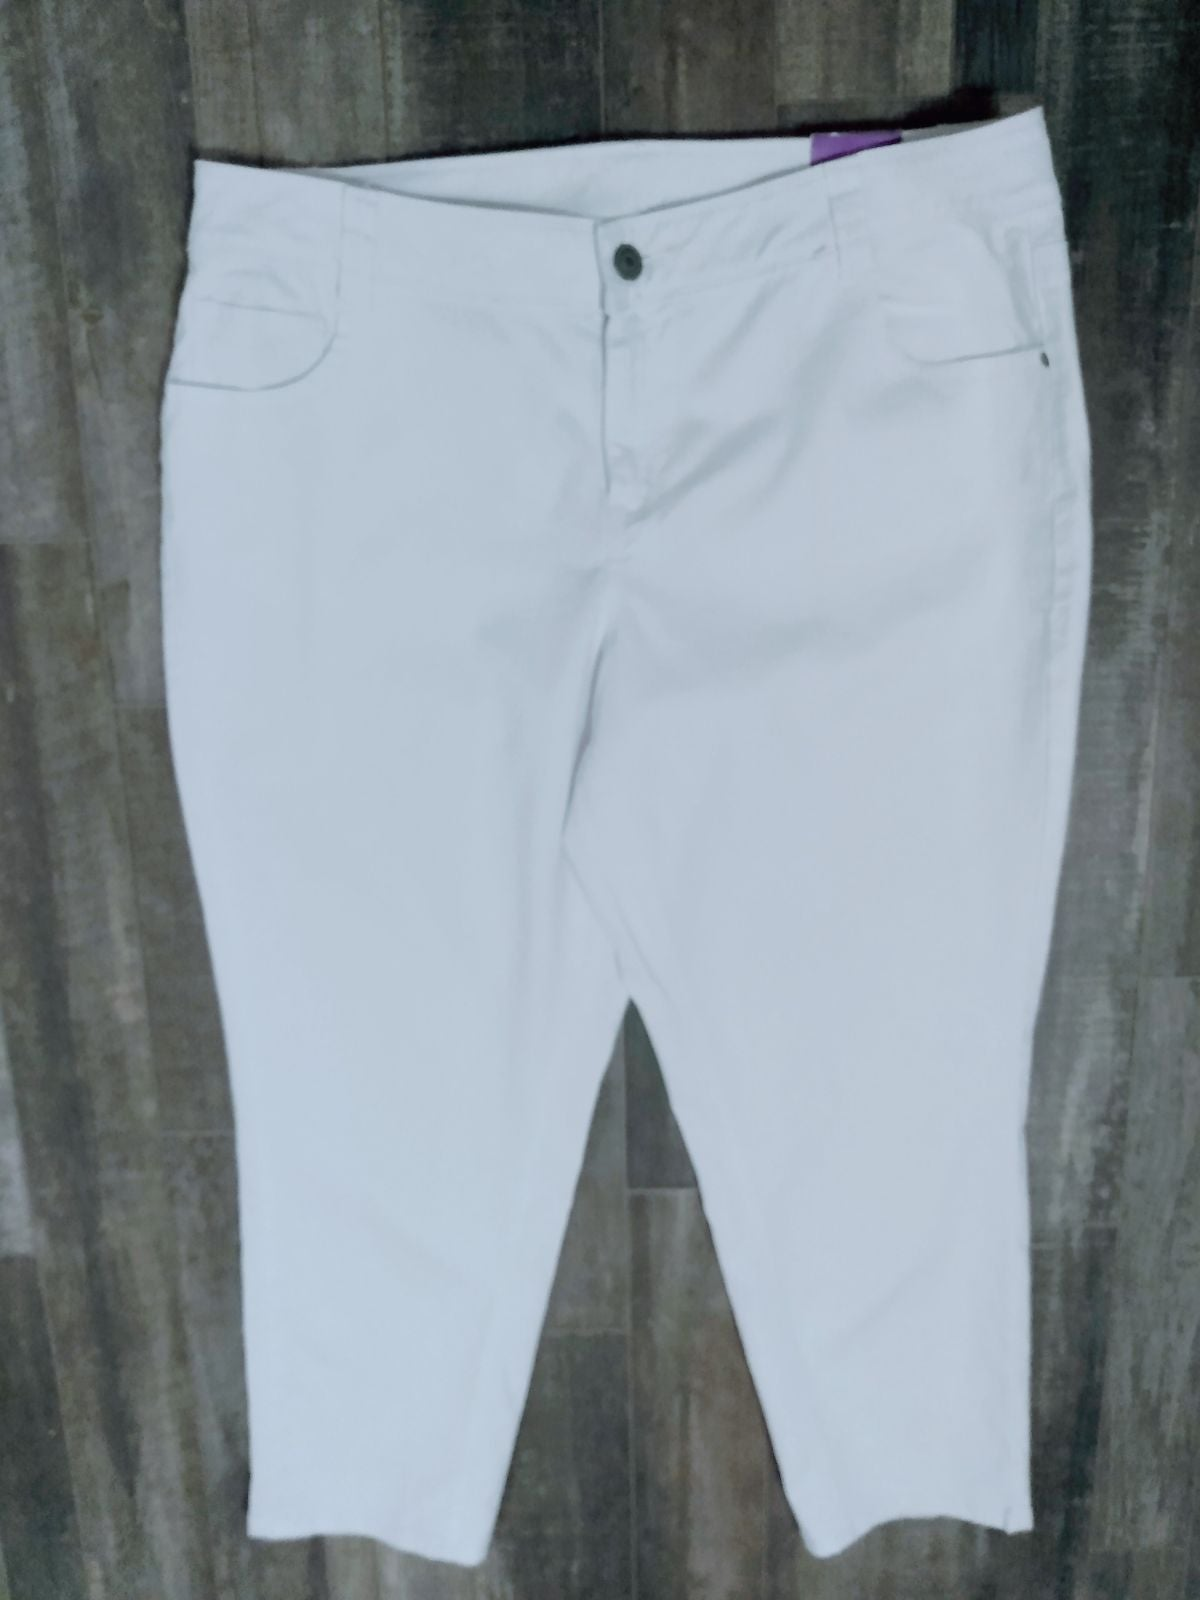 NWT Lane Bryant White Ankle Skinny Jeans